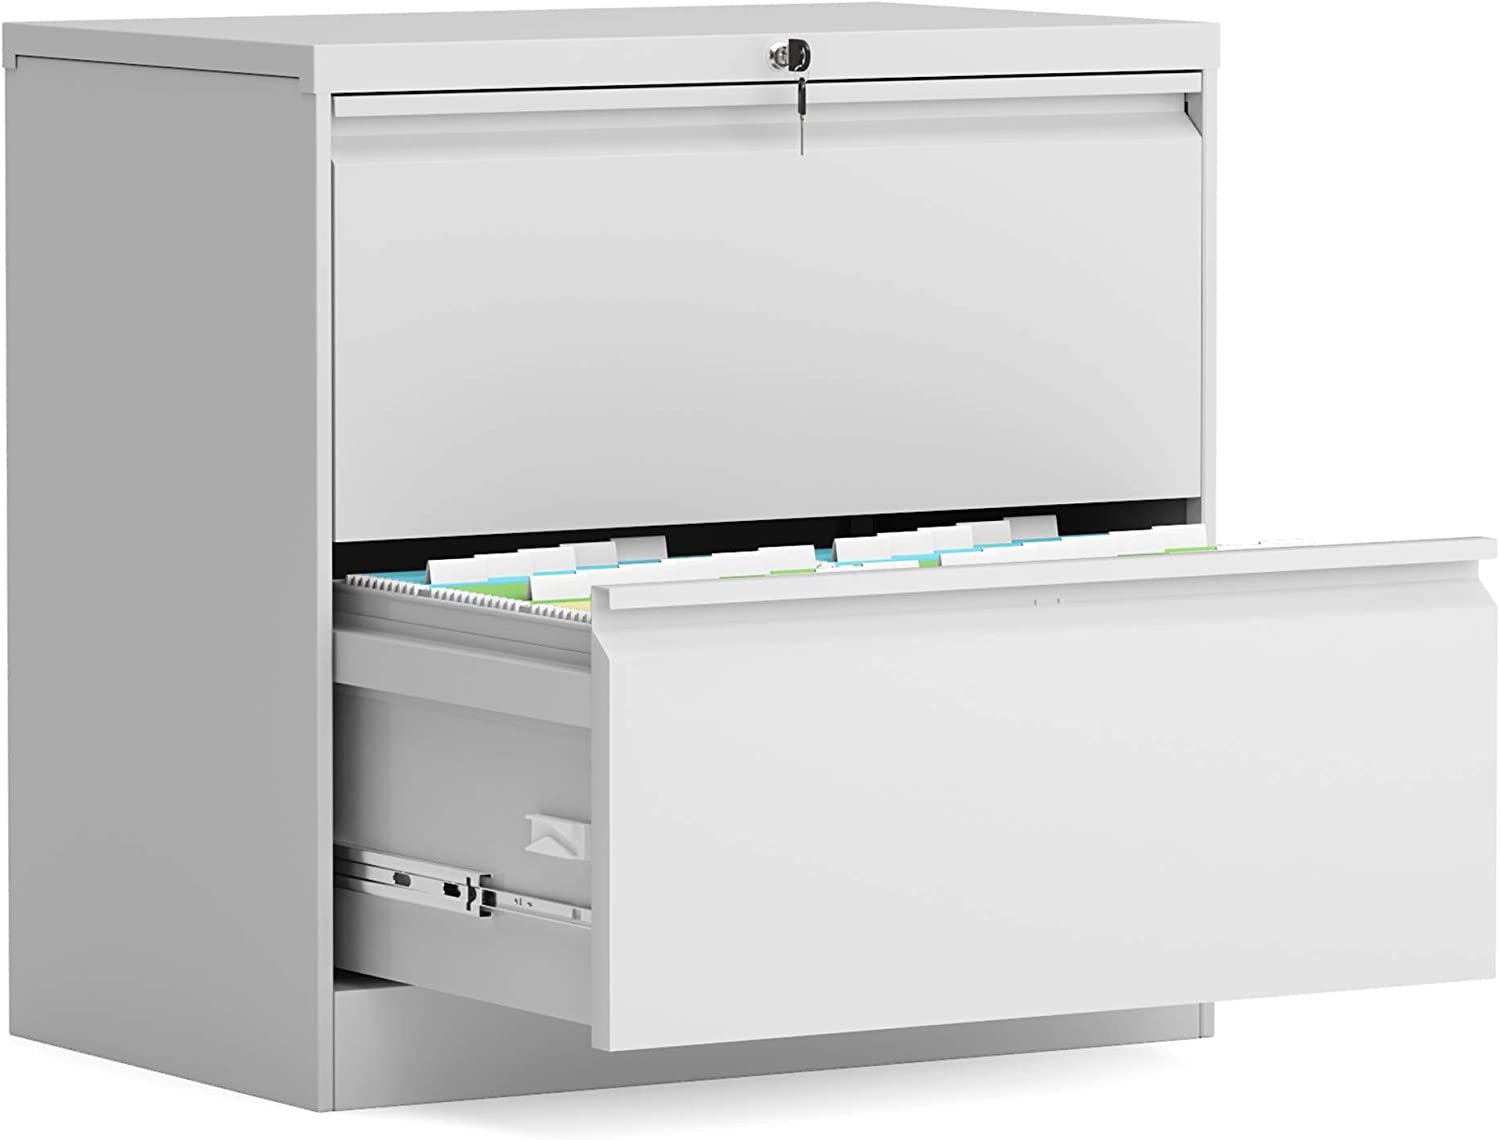 Aobabo homeoffice use Classic 45 Drawer lateral File Cabinet,Metal Steel  Filing Cabinet with Lock,Anti-tilt Structure,Fast Assemble with 45  Screw(White)